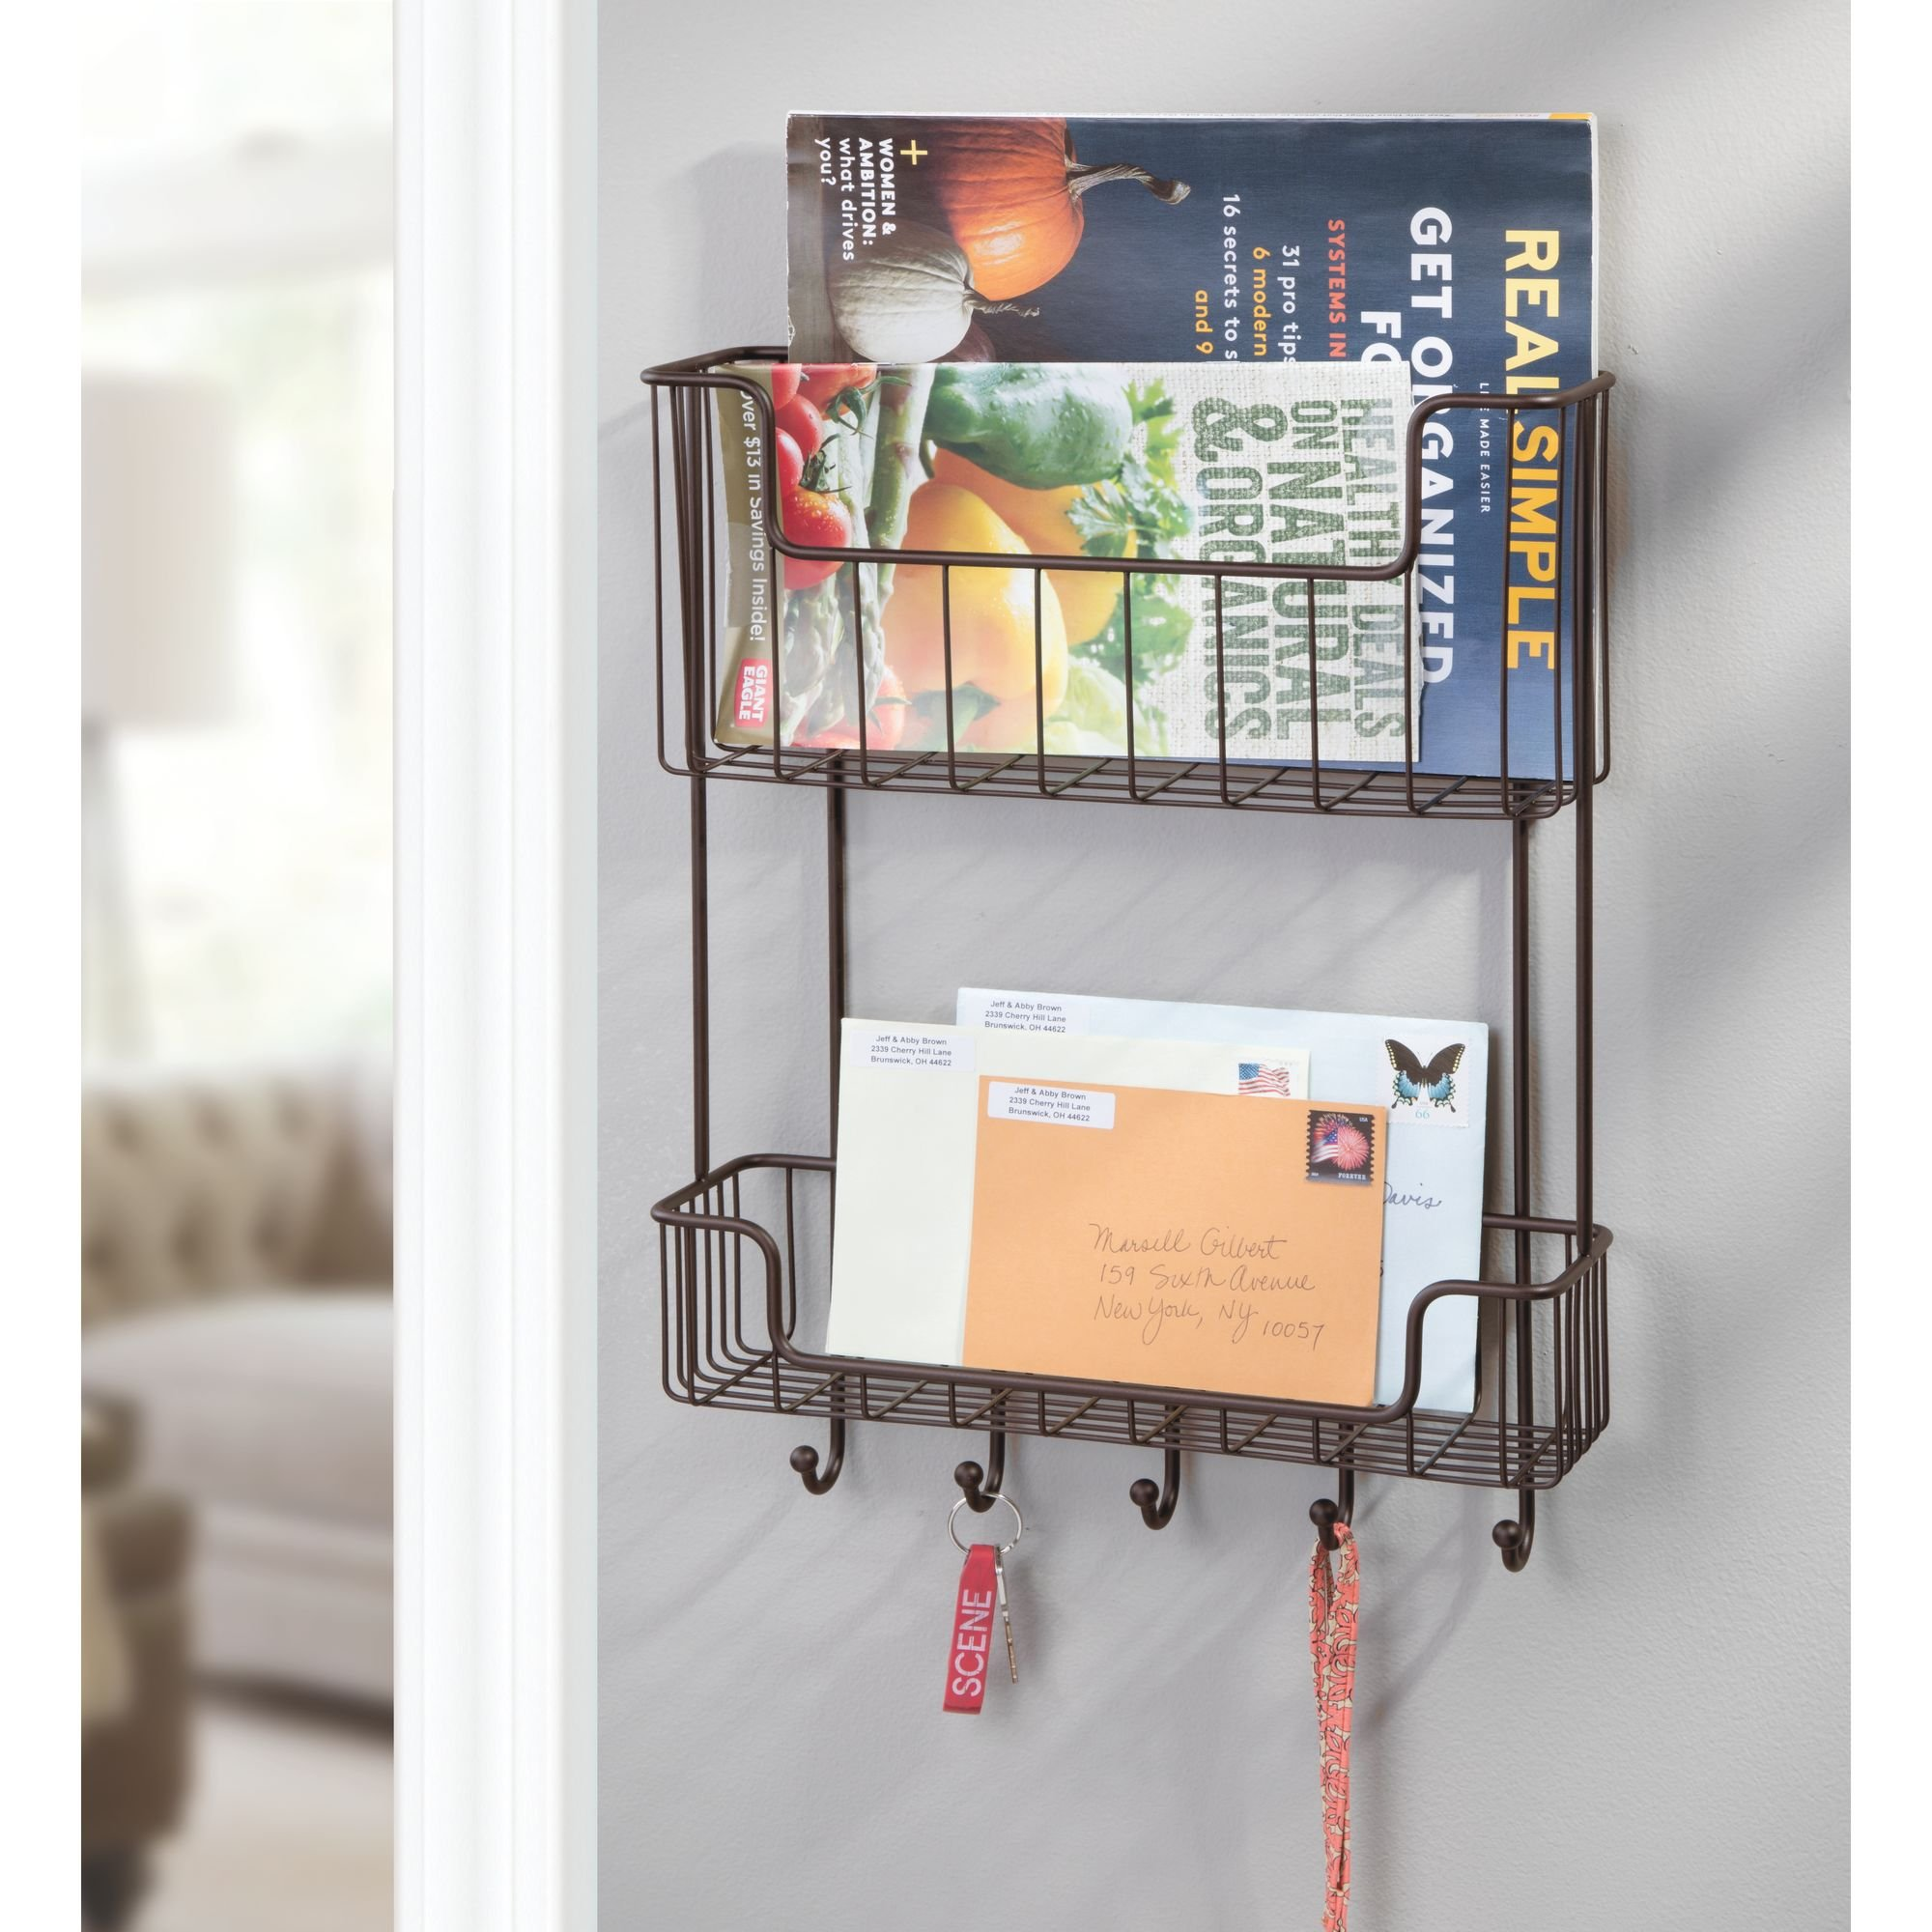 mDesign Wall Mount 2-Tier Mail, Letter, Magazine Holder, Key Rack, and Accessory Organizer for Entryway, Hallway, Mudroom – Strong Steel Wire Design, Bronze by mDesign (Image #2)